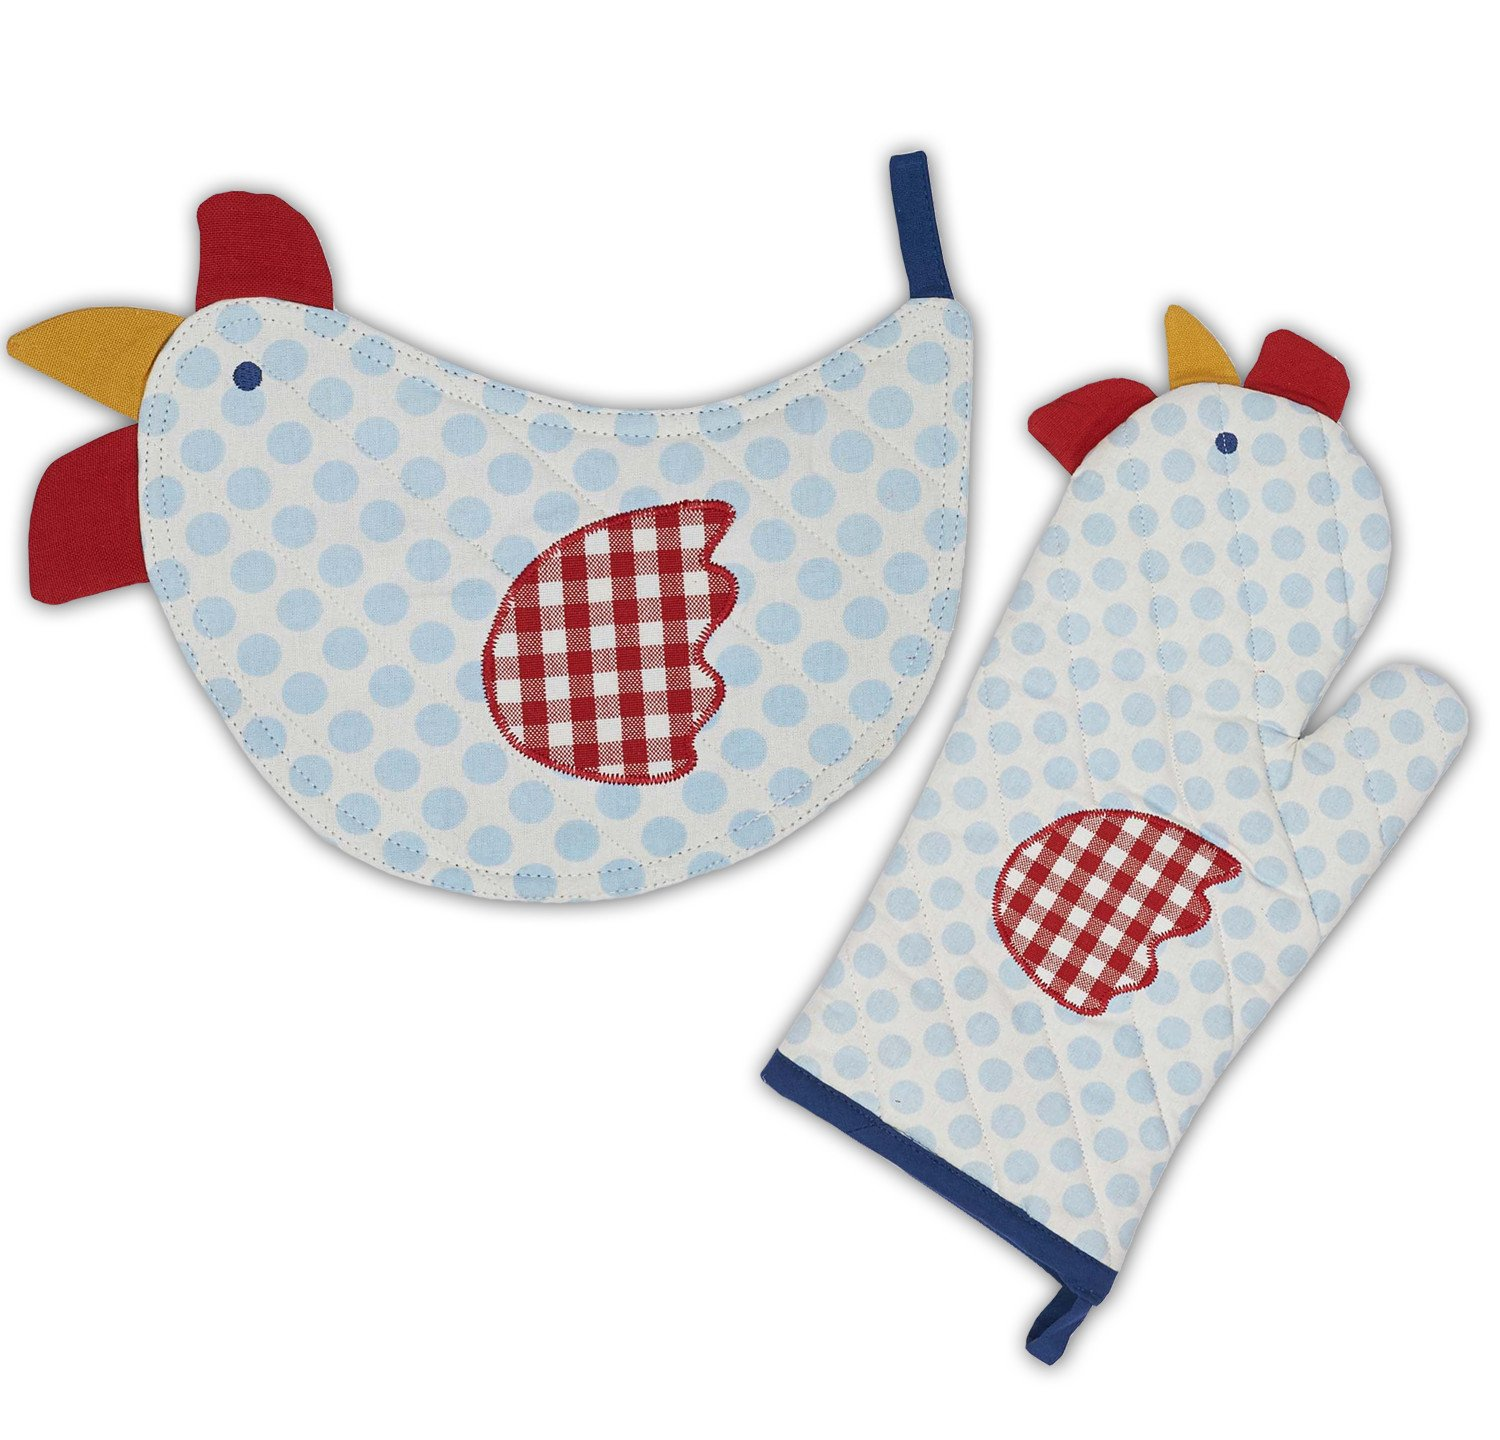 DII 100% Cotton, Machine Washable, Everyday Kitchen Basic, Oven Mitt and Pot Holder Gift Set, Chicken Shape